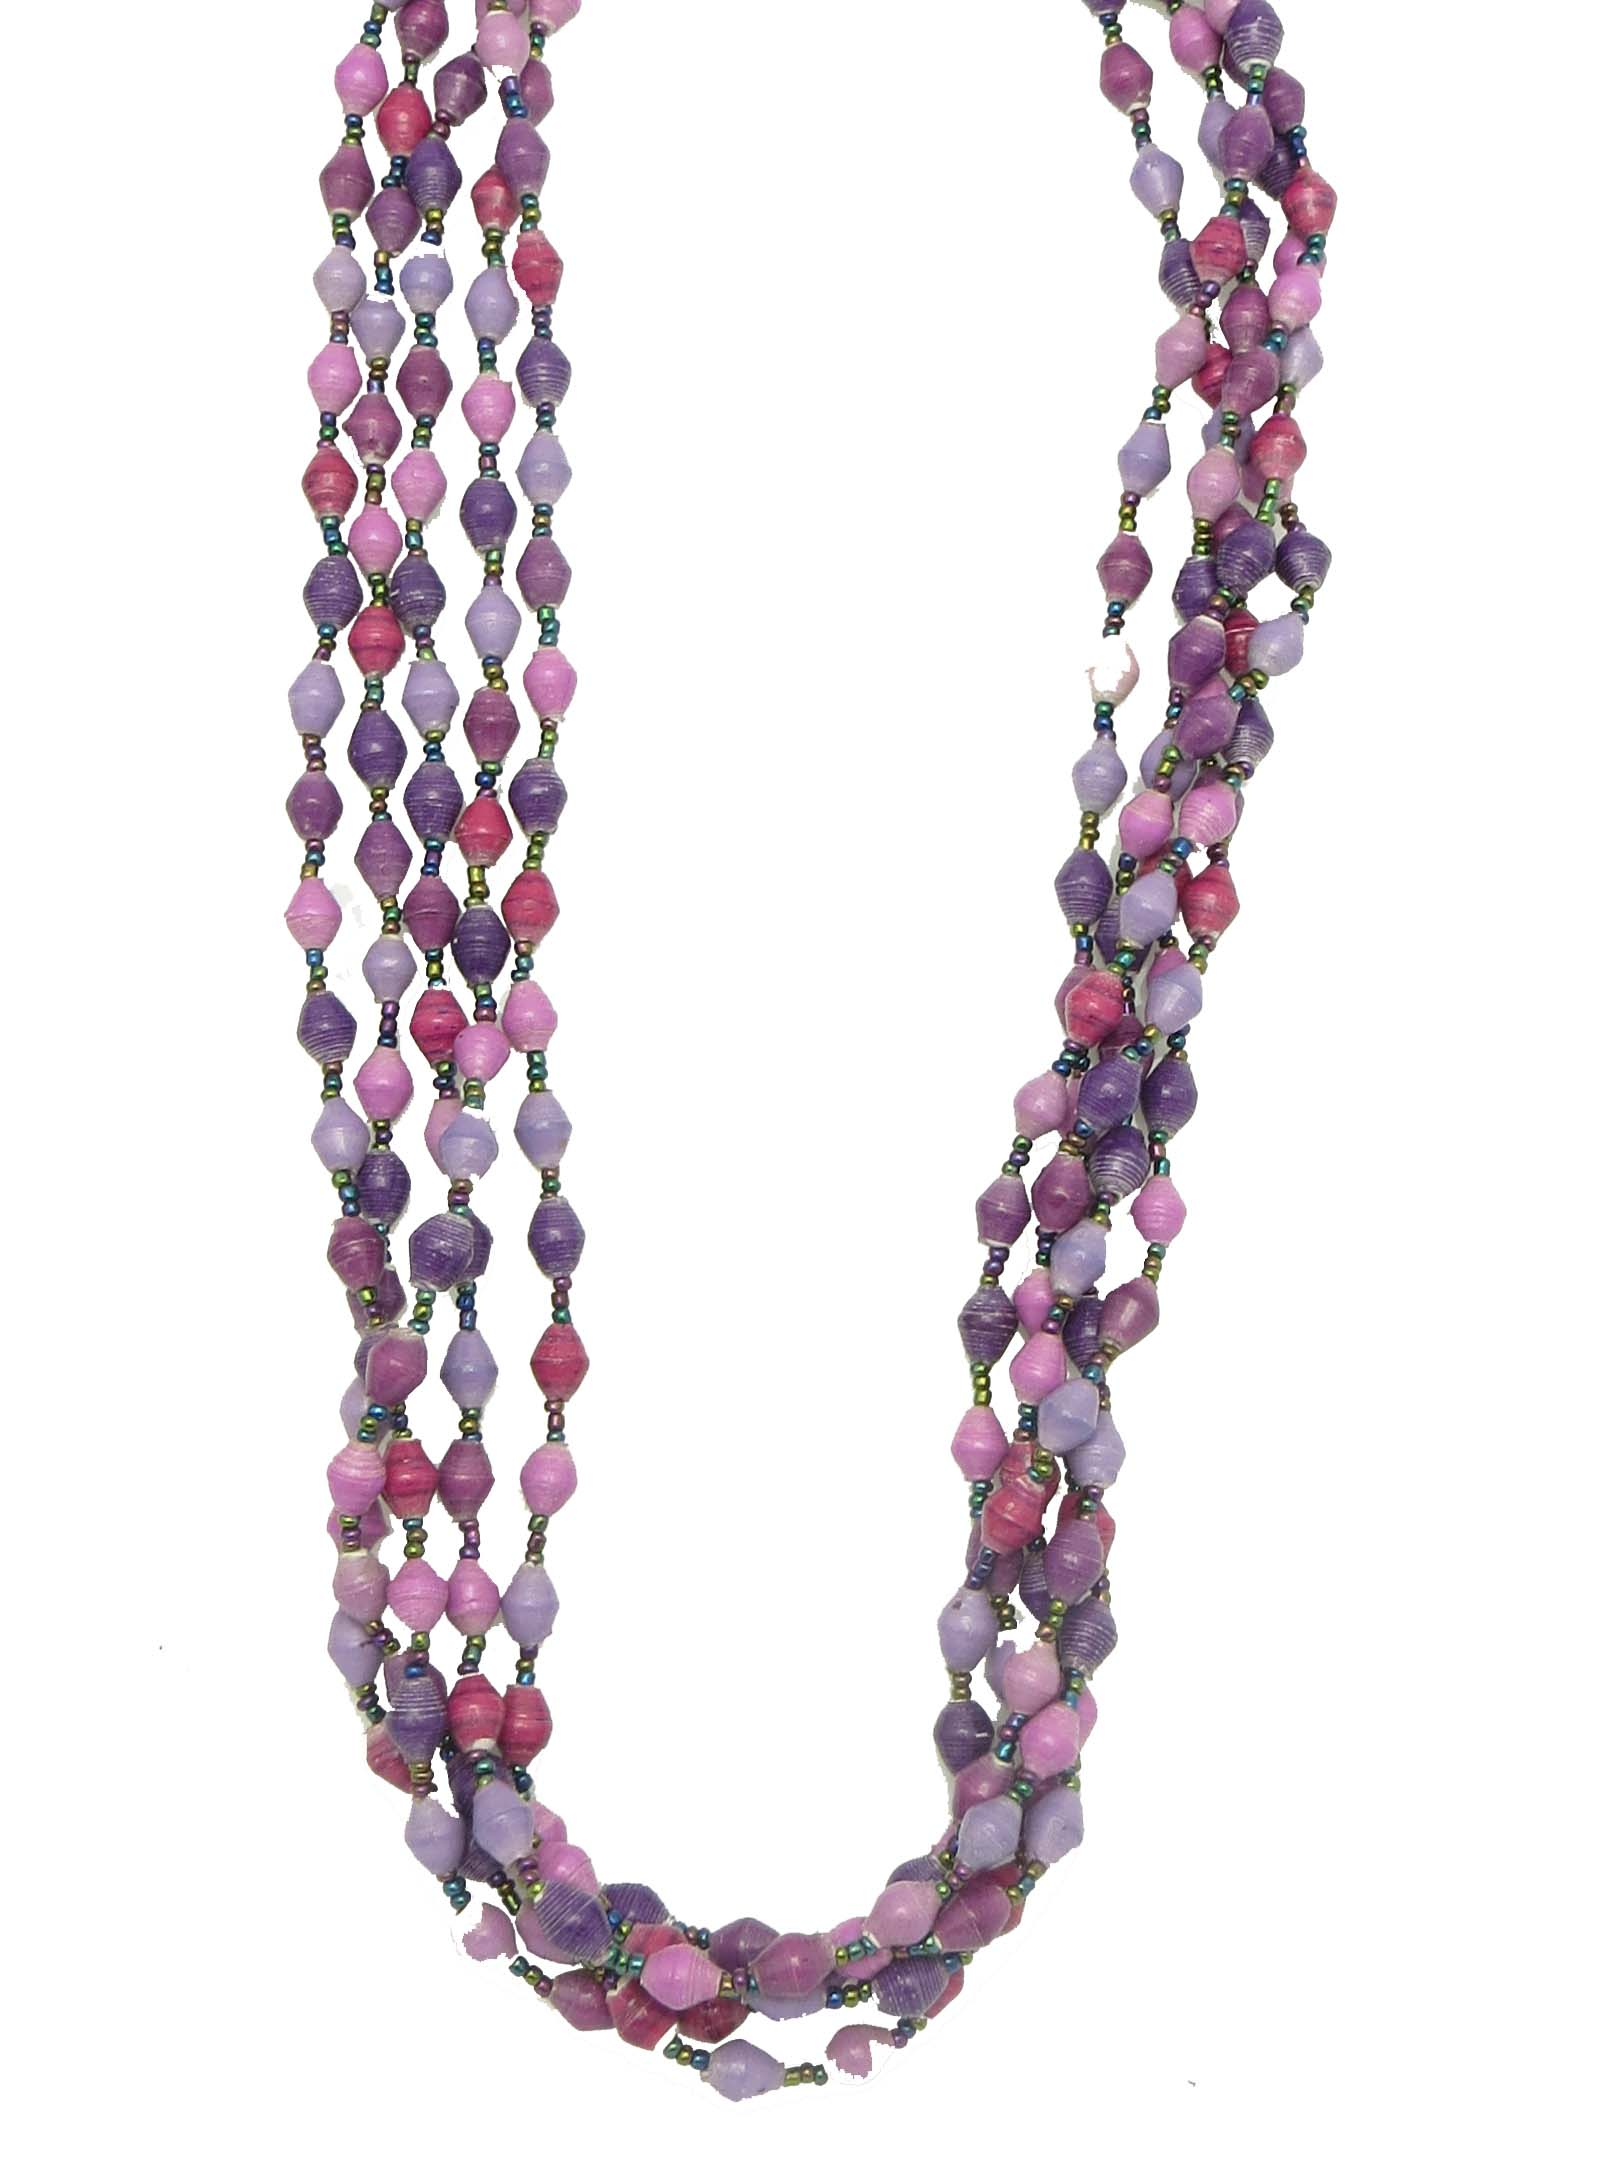 5-strand necklace - shades of purple